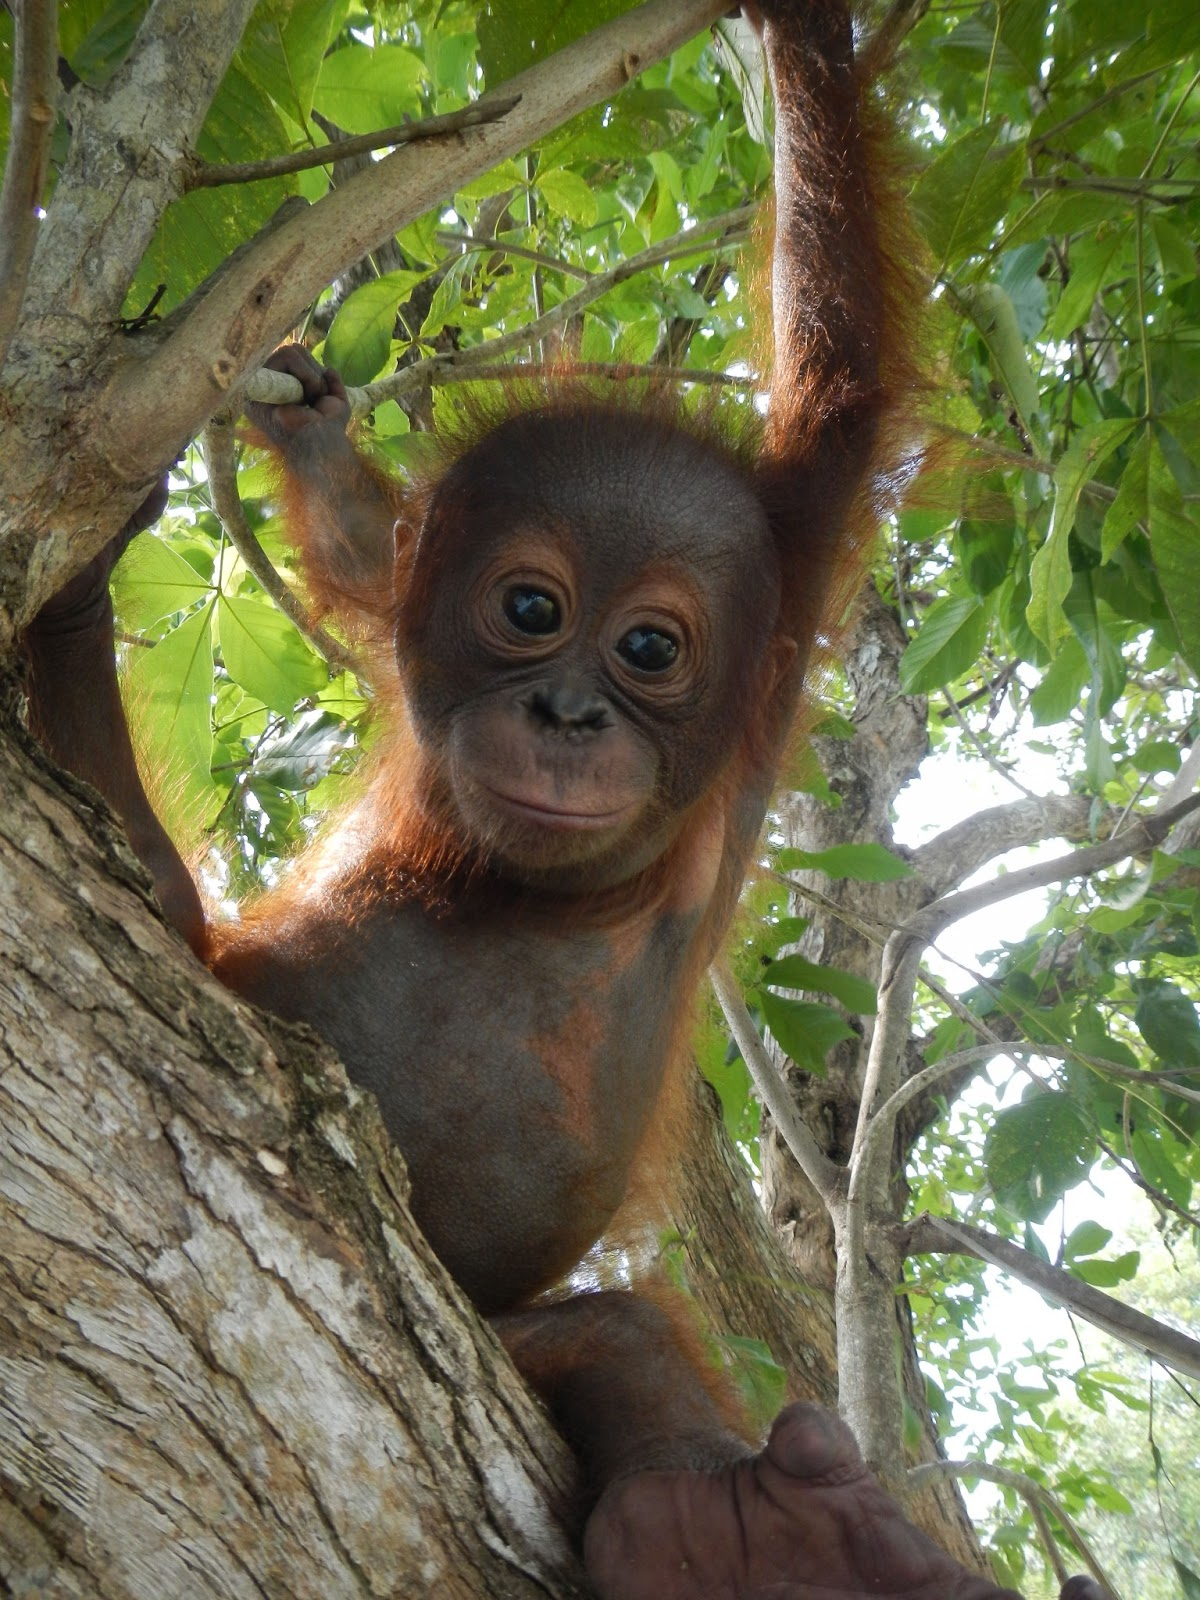 Little Onyo is bold and brave out in the safety of the forest enclosure